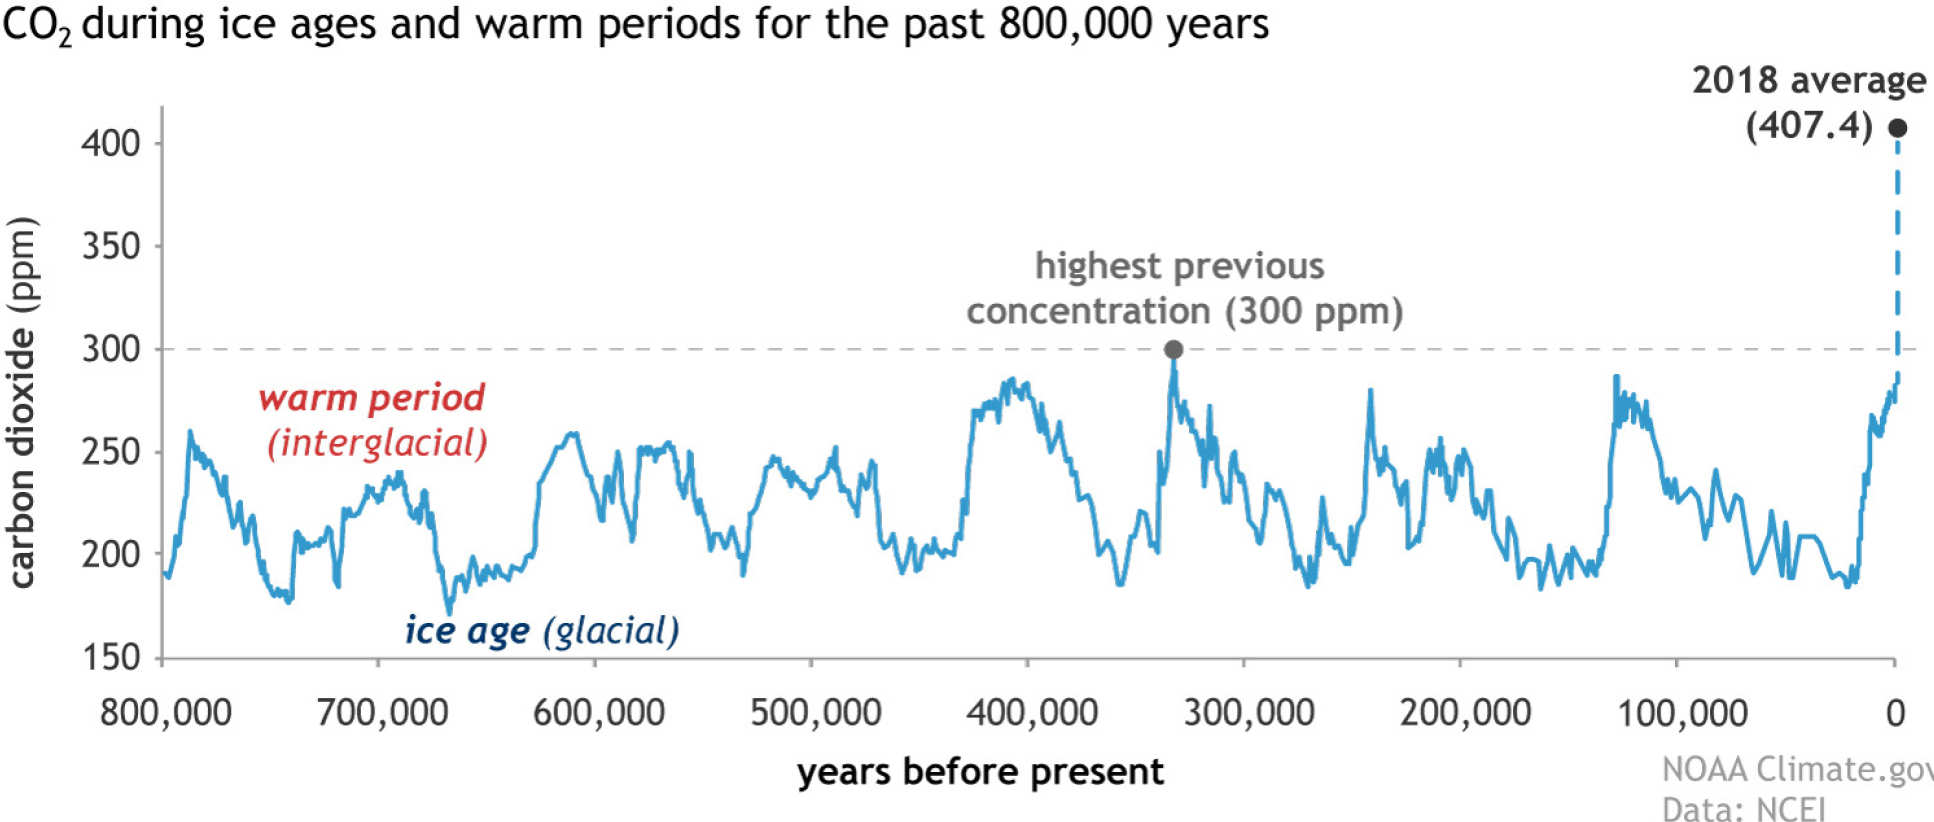 A graph showing increases in atmospheric CO2 concentrations throughout the last 800,000 years. It shows that CO2 levels are higher now than at any point in this time period.